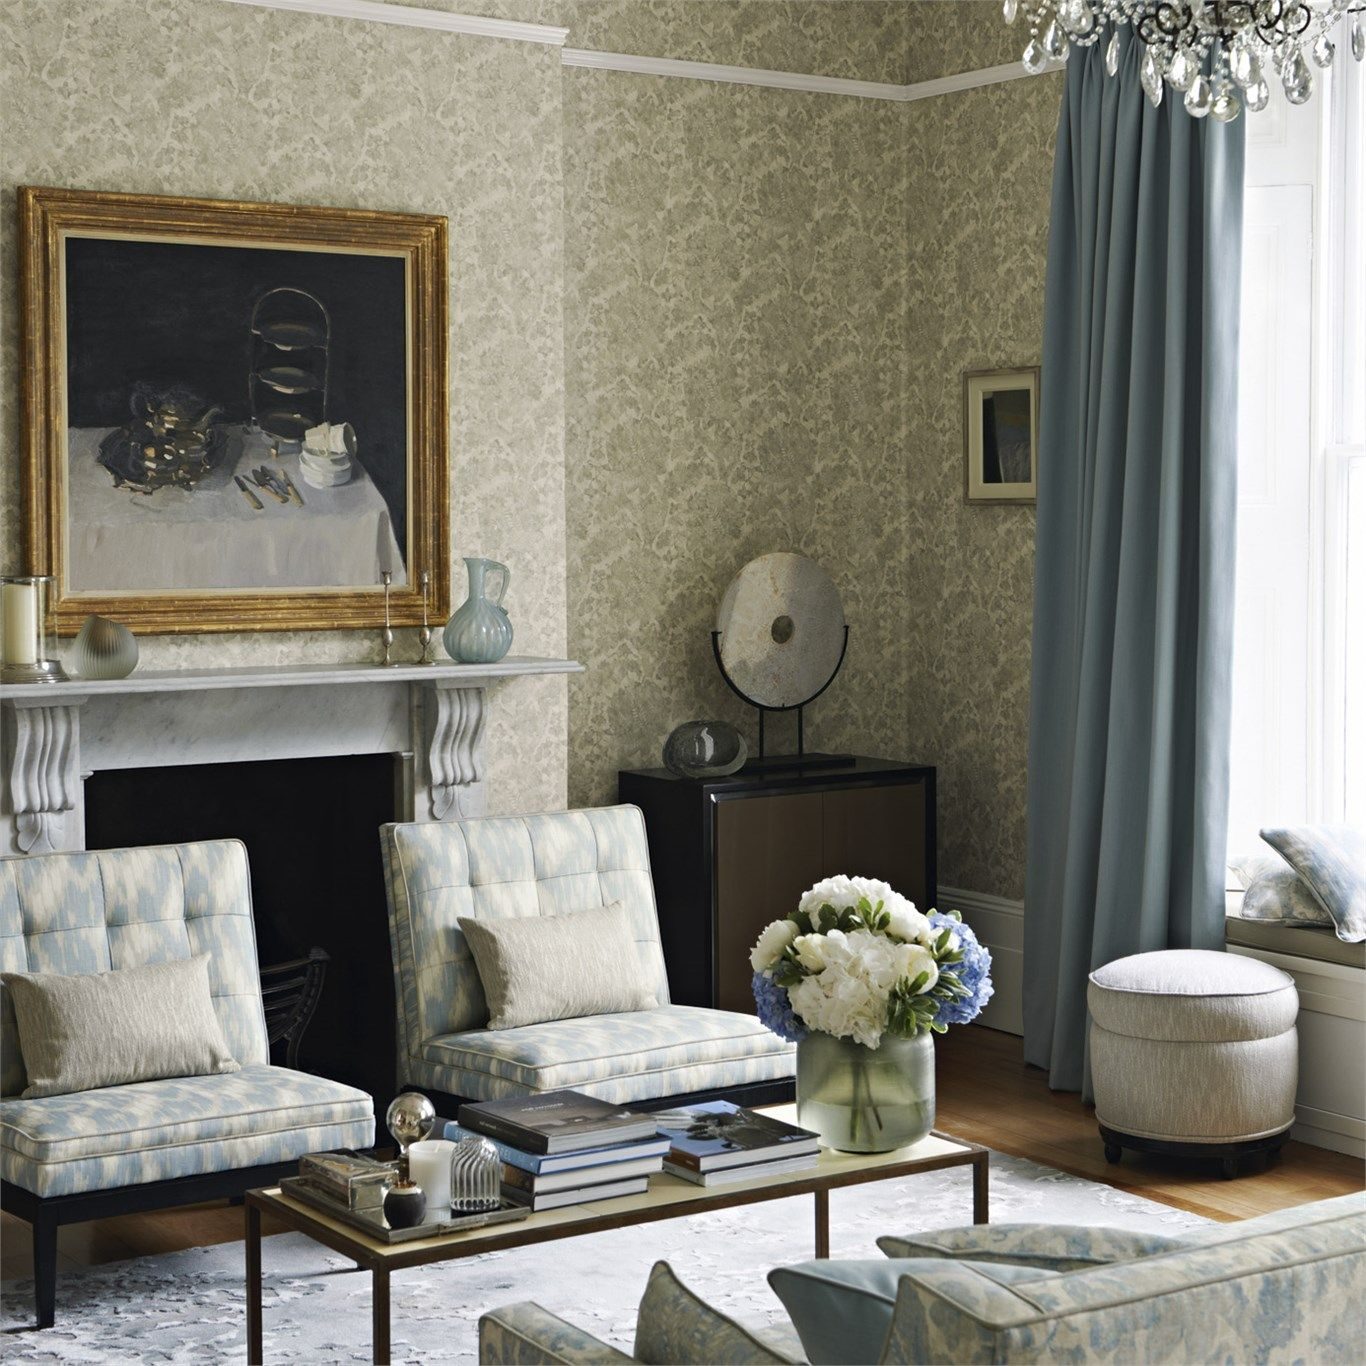 Zoffany - Luxury Fabric and Wallpaper Design   Products   British/UK Fabric and Wallpapers   Carrera (ZTOW310863)   Town & Country Wallpapers